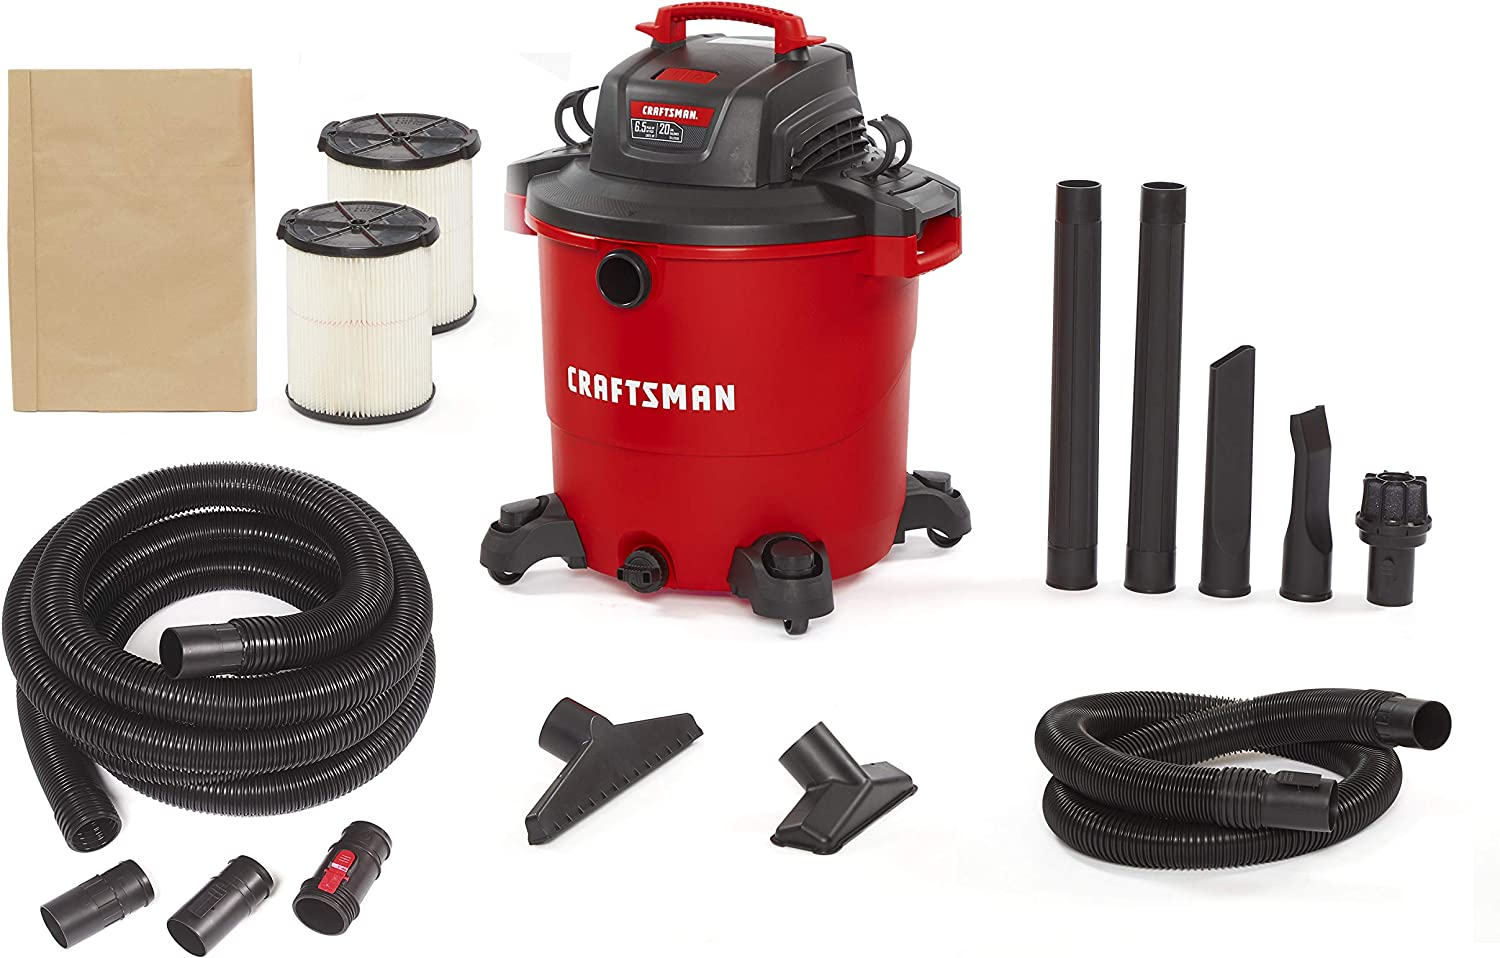 CRAFTSMAN CMXEVBE17596 20 Gallon 6.5 Peak HP Wet/Dry Vac, Heavy-Duty Shop Vacuum with 20-Foot Hose Kit and General Purpose Filter